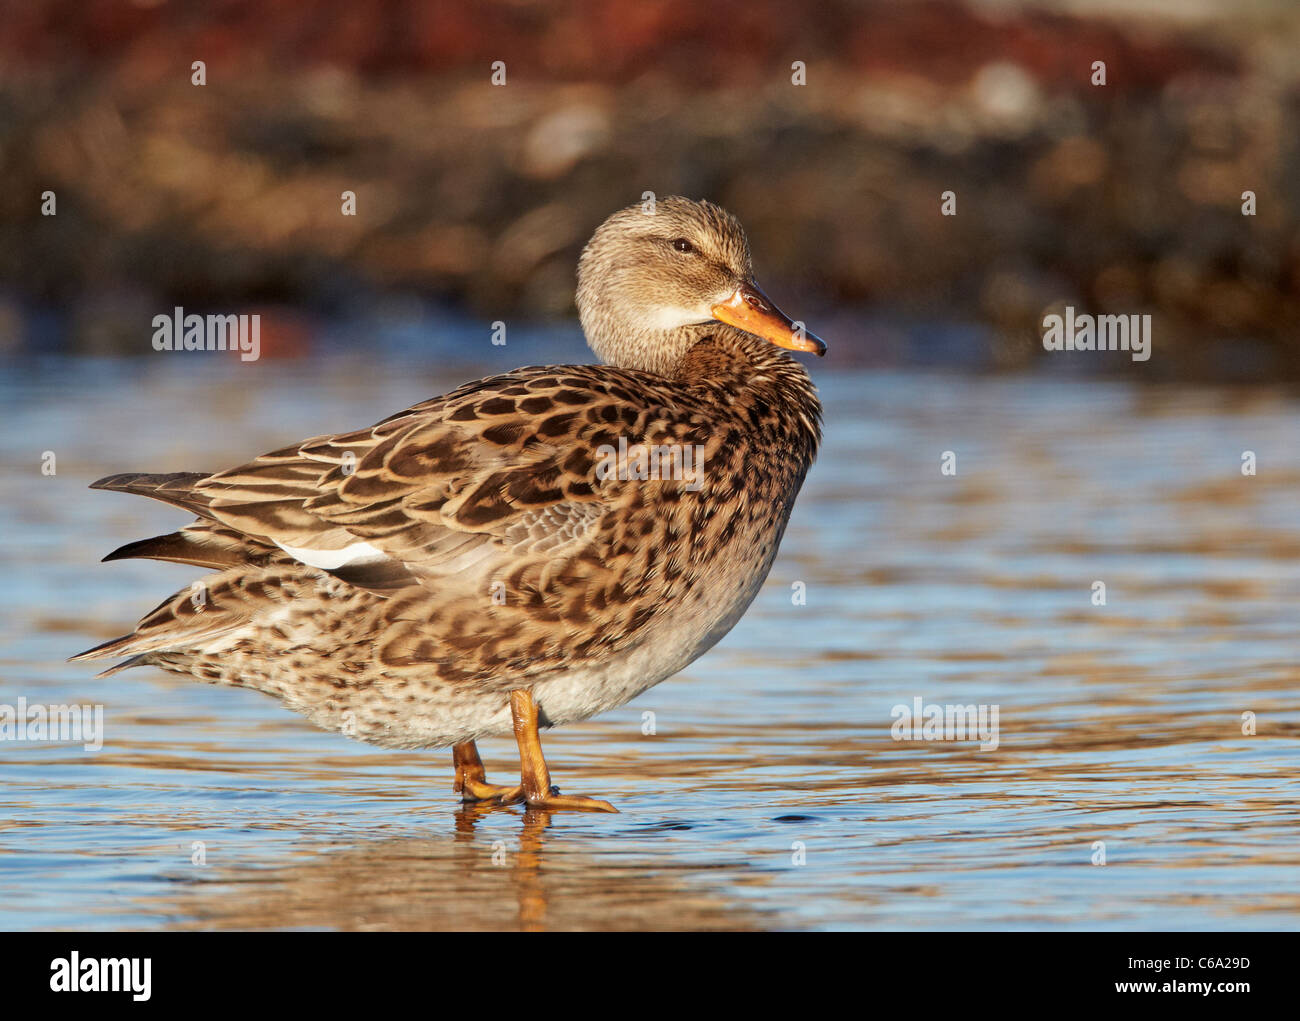 Gadwall (Anas strepera), female standing in shallow water. - Stock Image